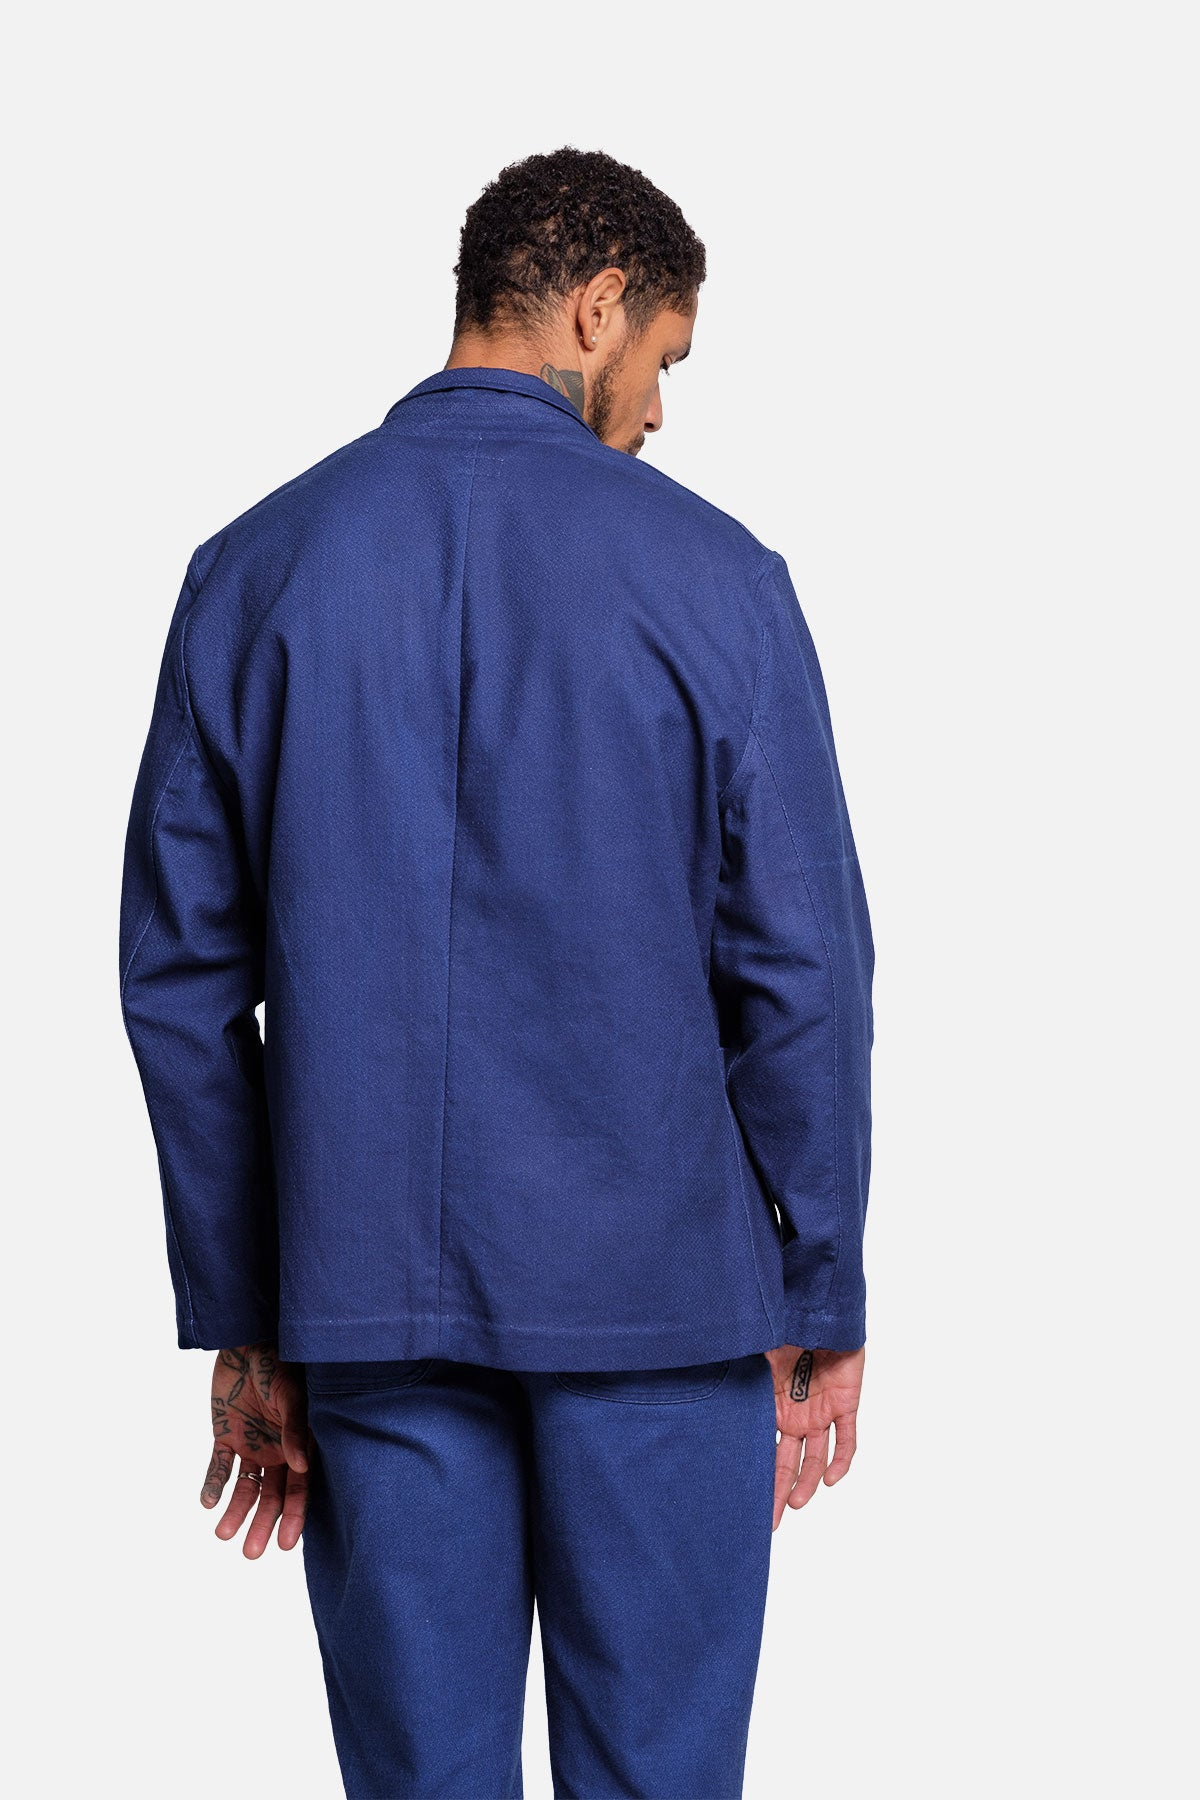 CASS JACKET IN INDIGO MELON CLOTH - Fortune Goods